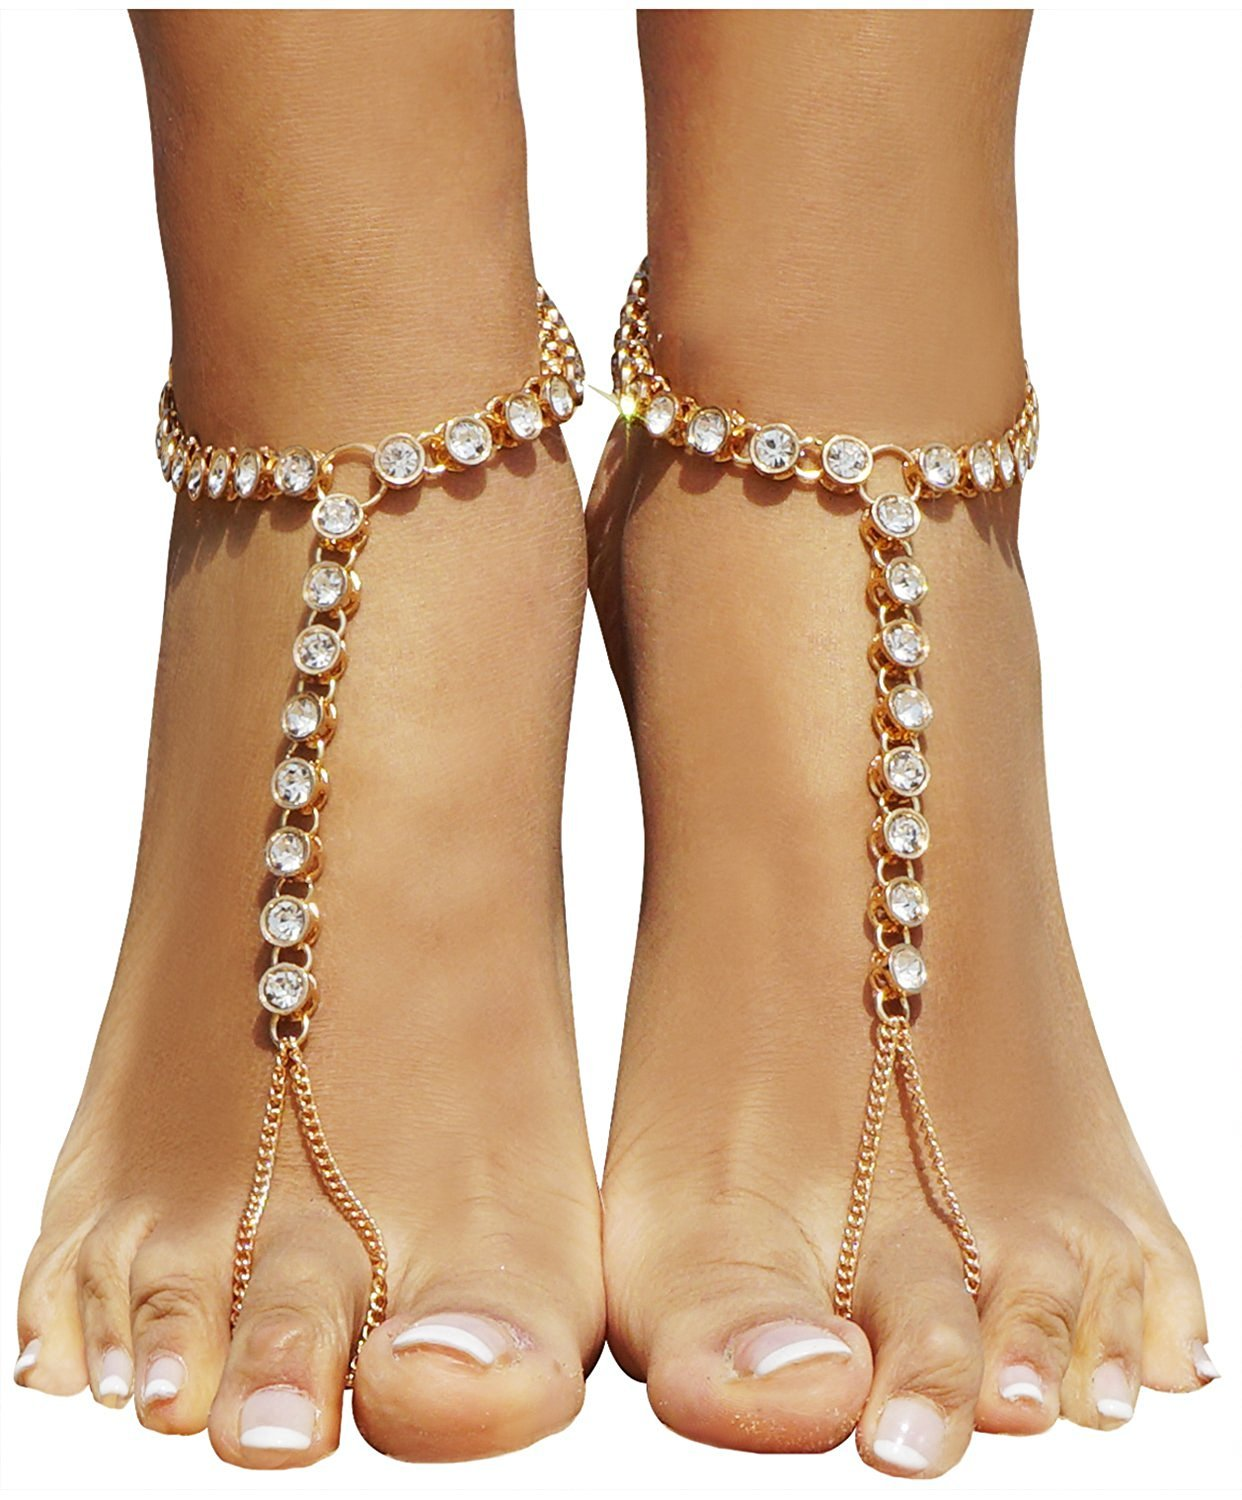 HOPES KINGDOM 2 Pieces Women's Foot Chain Barefoot Sandals Beach Wedding Jewelry Anklet with Rhinestone Toe Ring